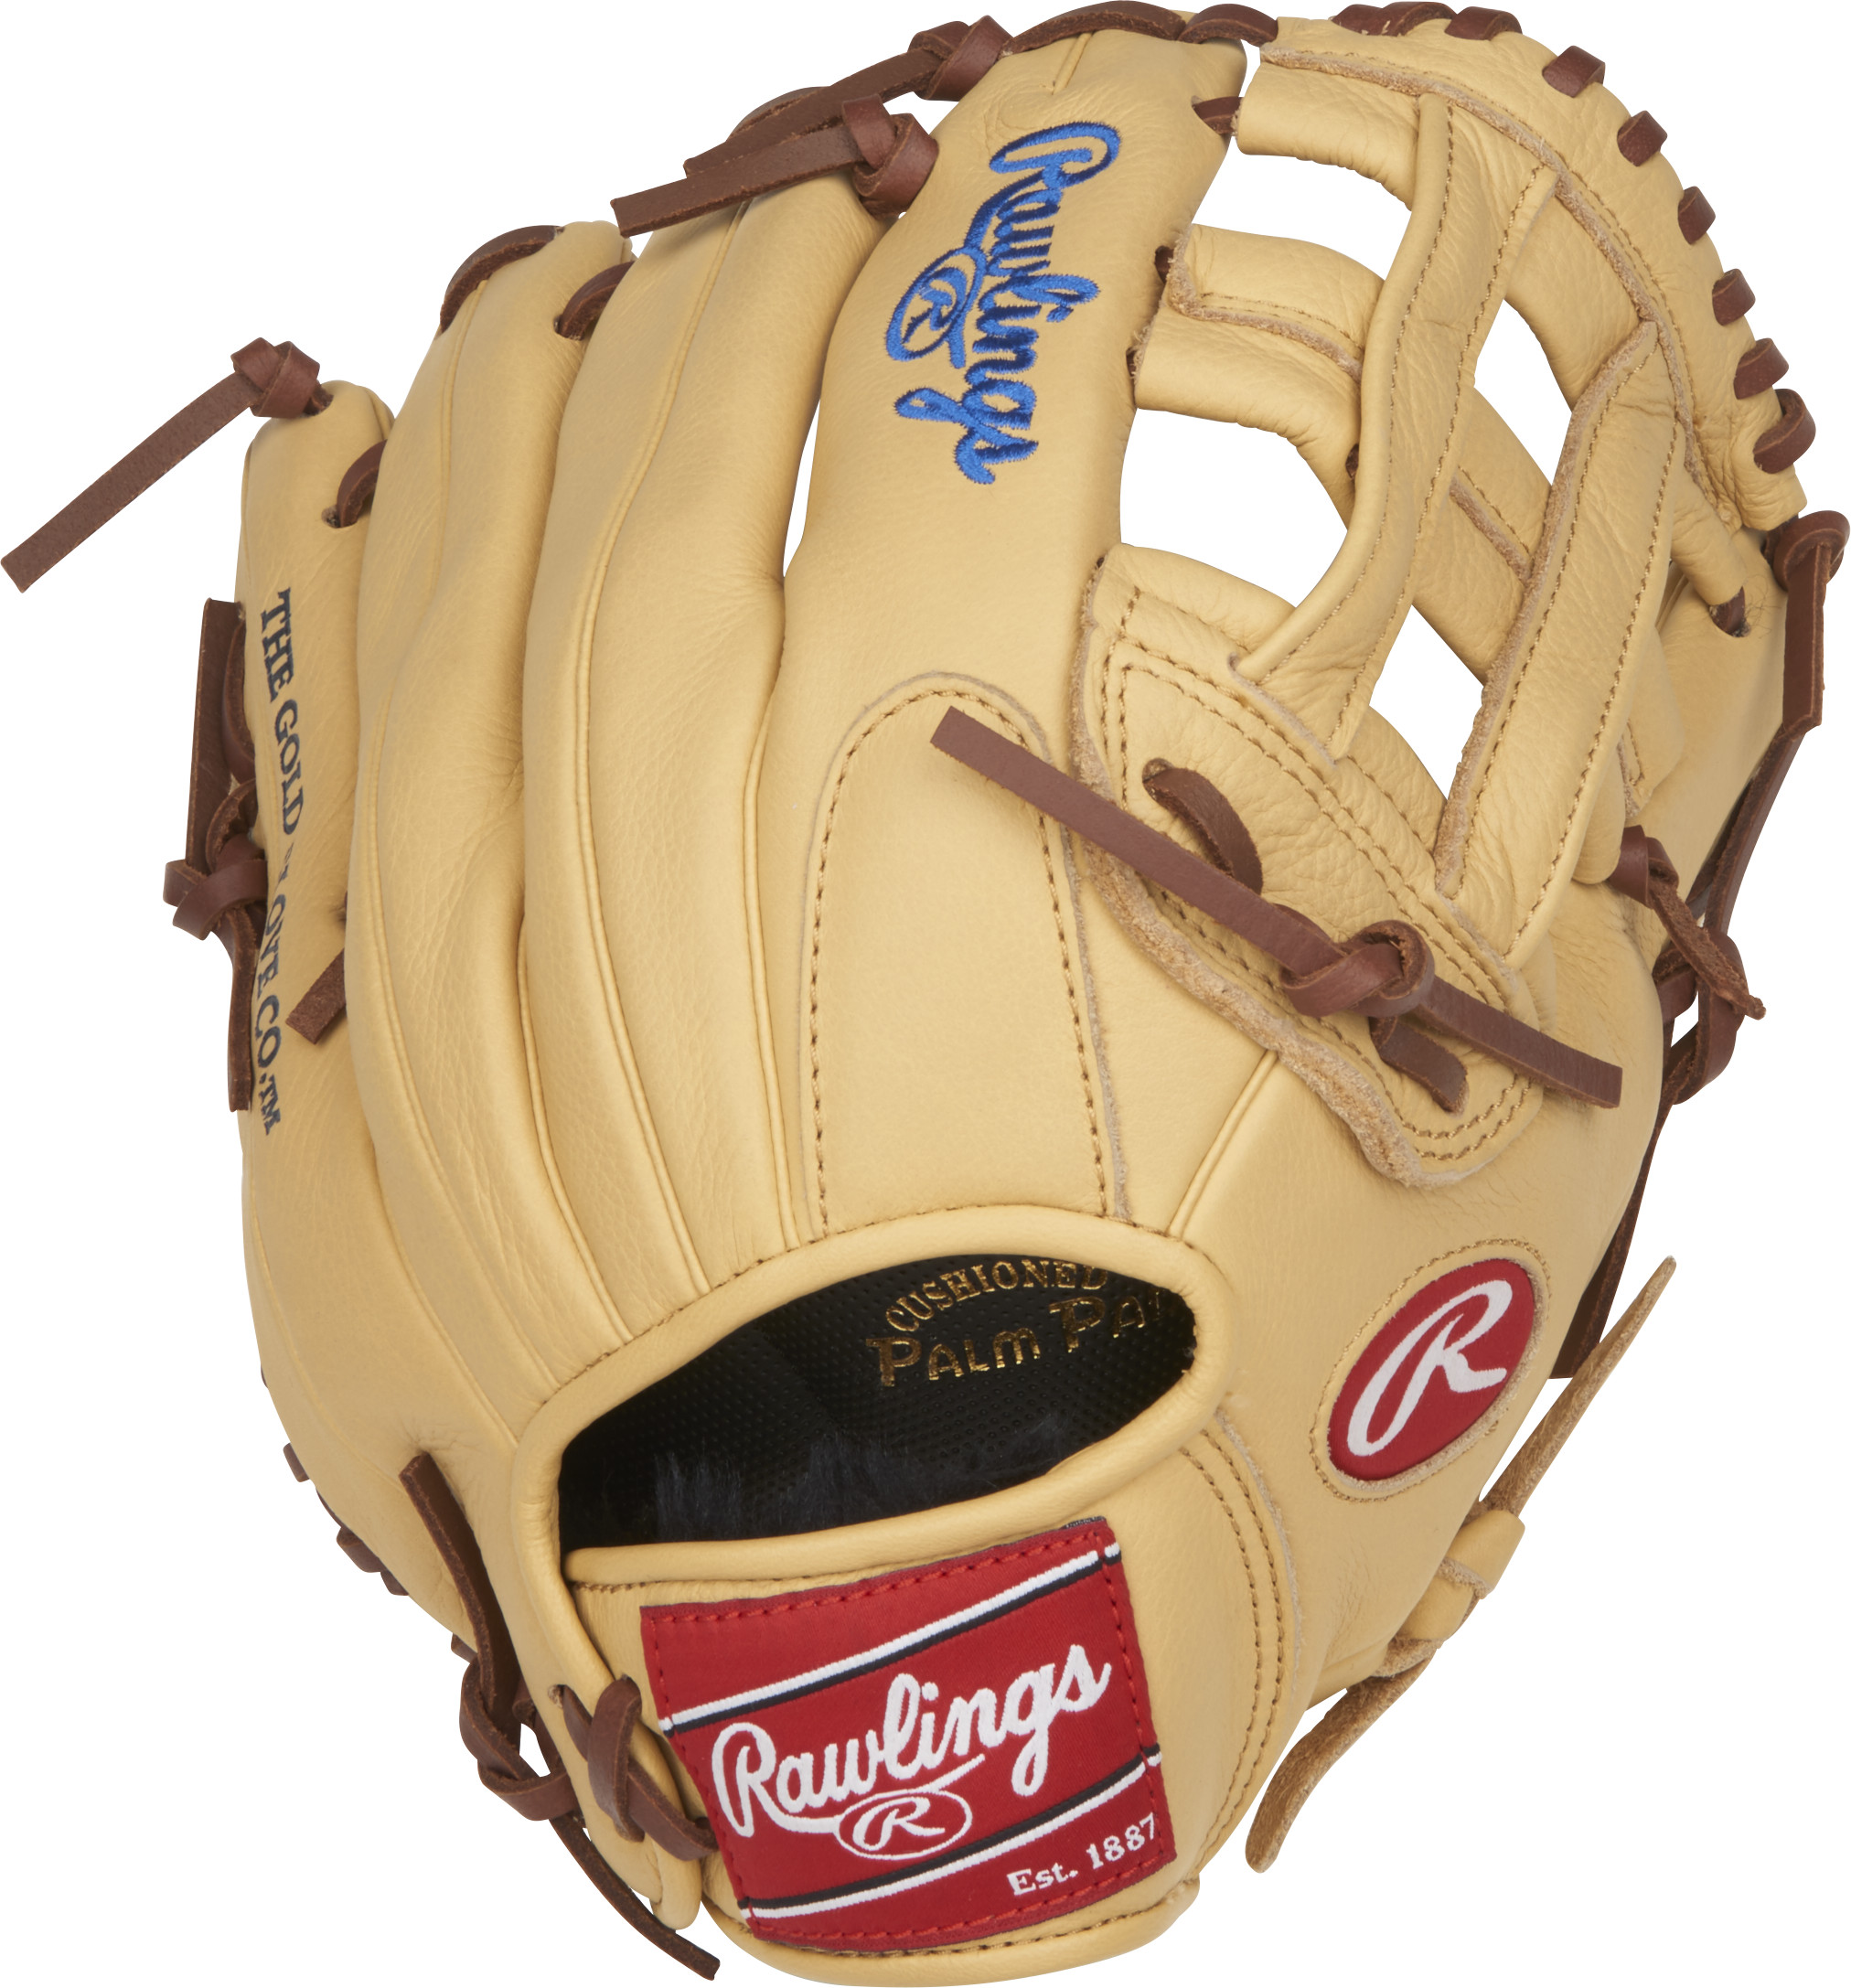 http://www.bestbatdeals.com/images/gloves/rawlings/SPL115KB-2.jpg